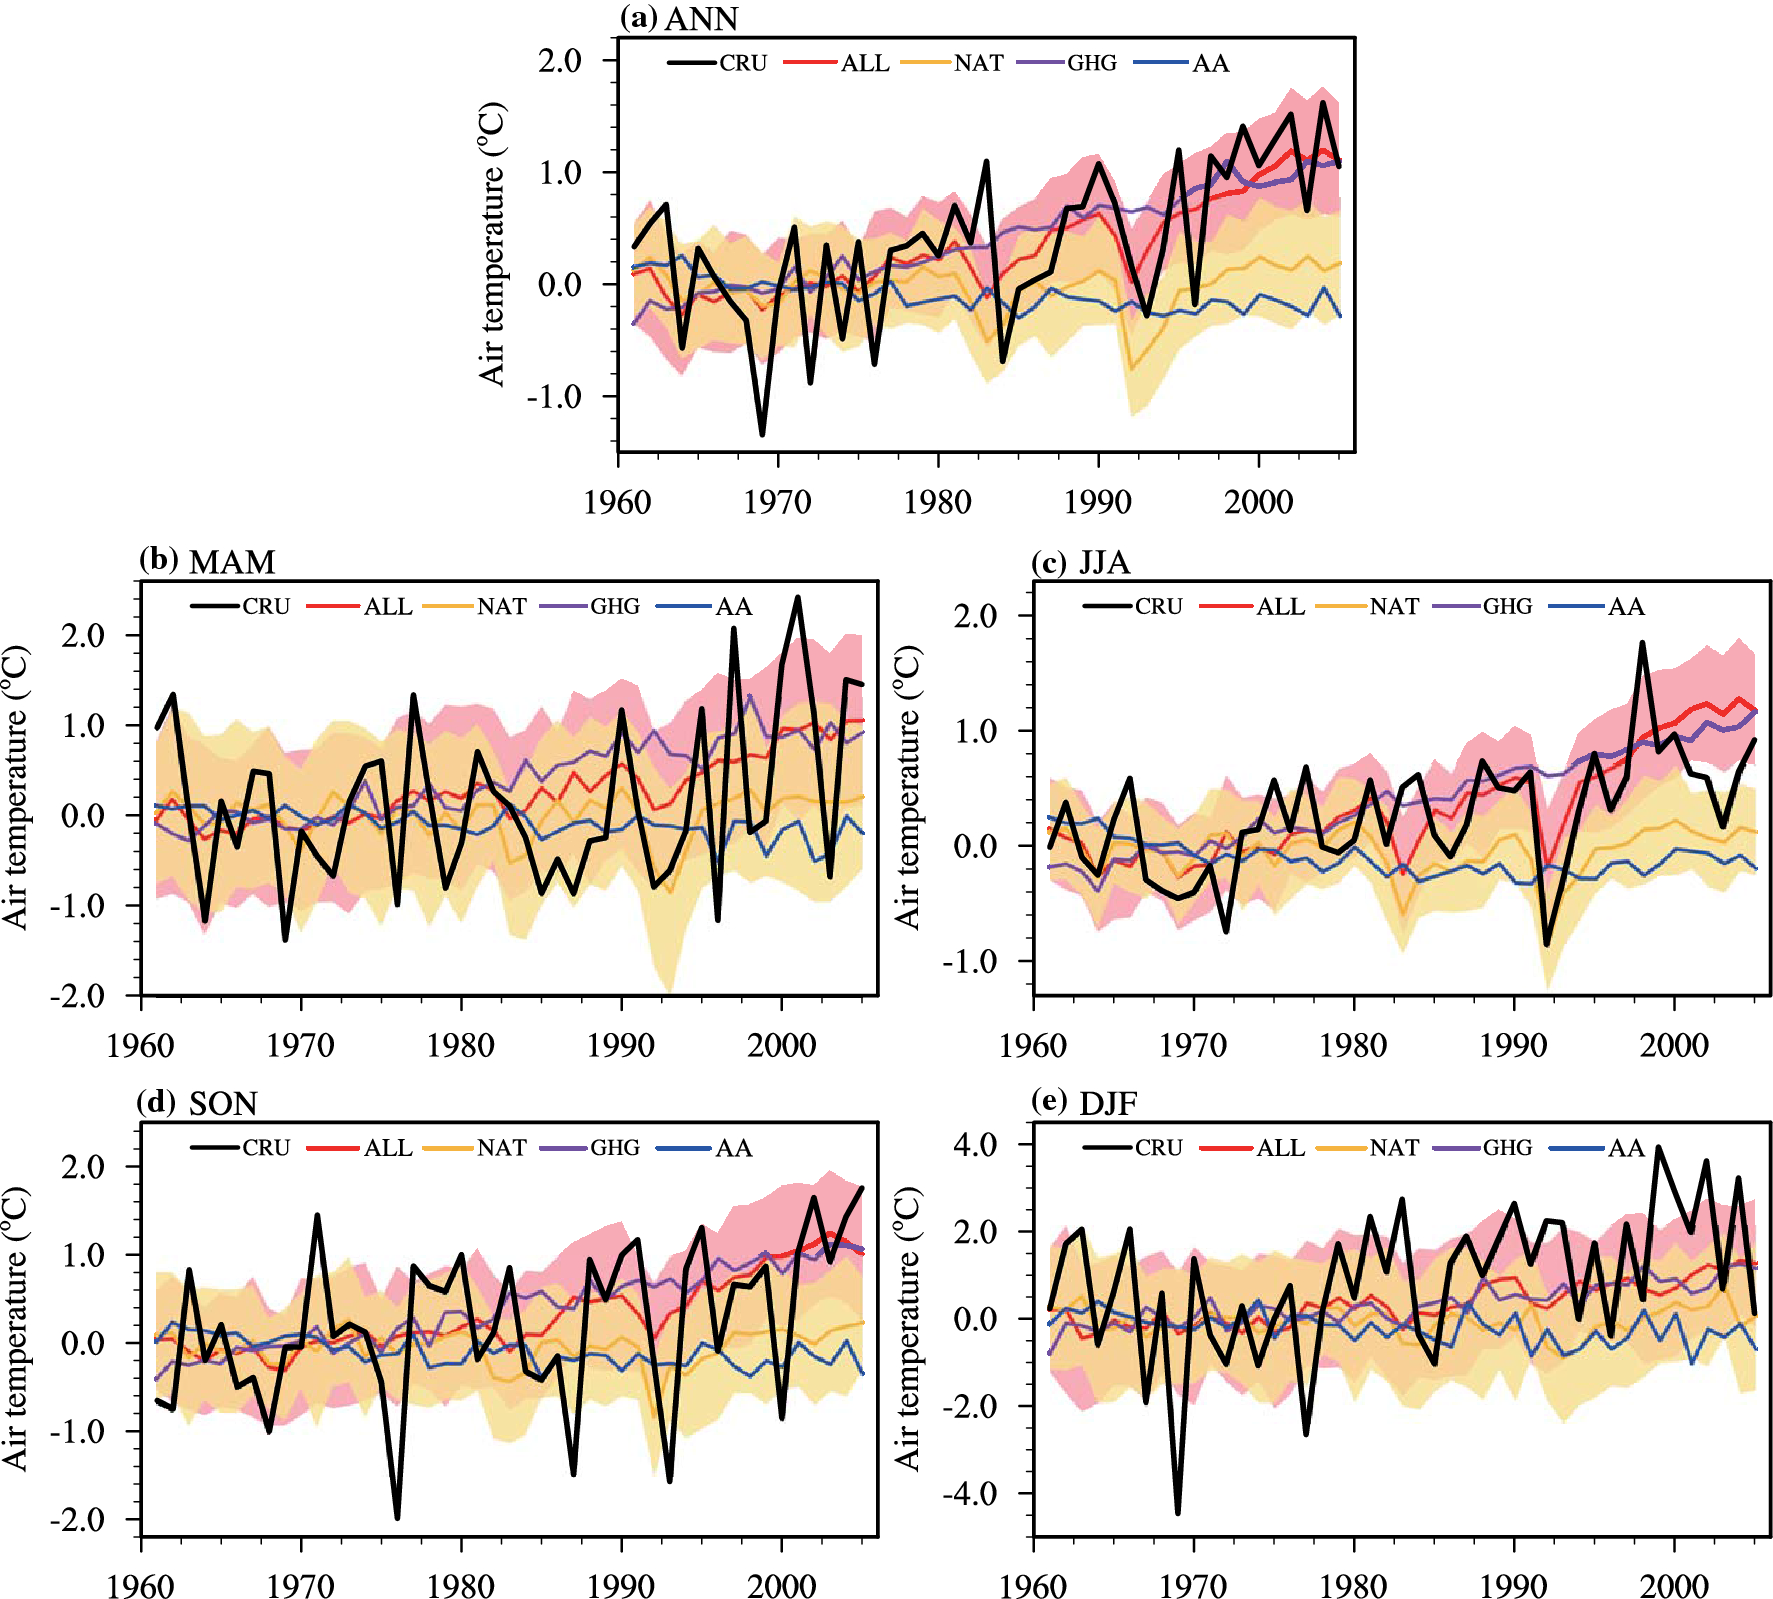 Detecting human influence on the temperature changes in